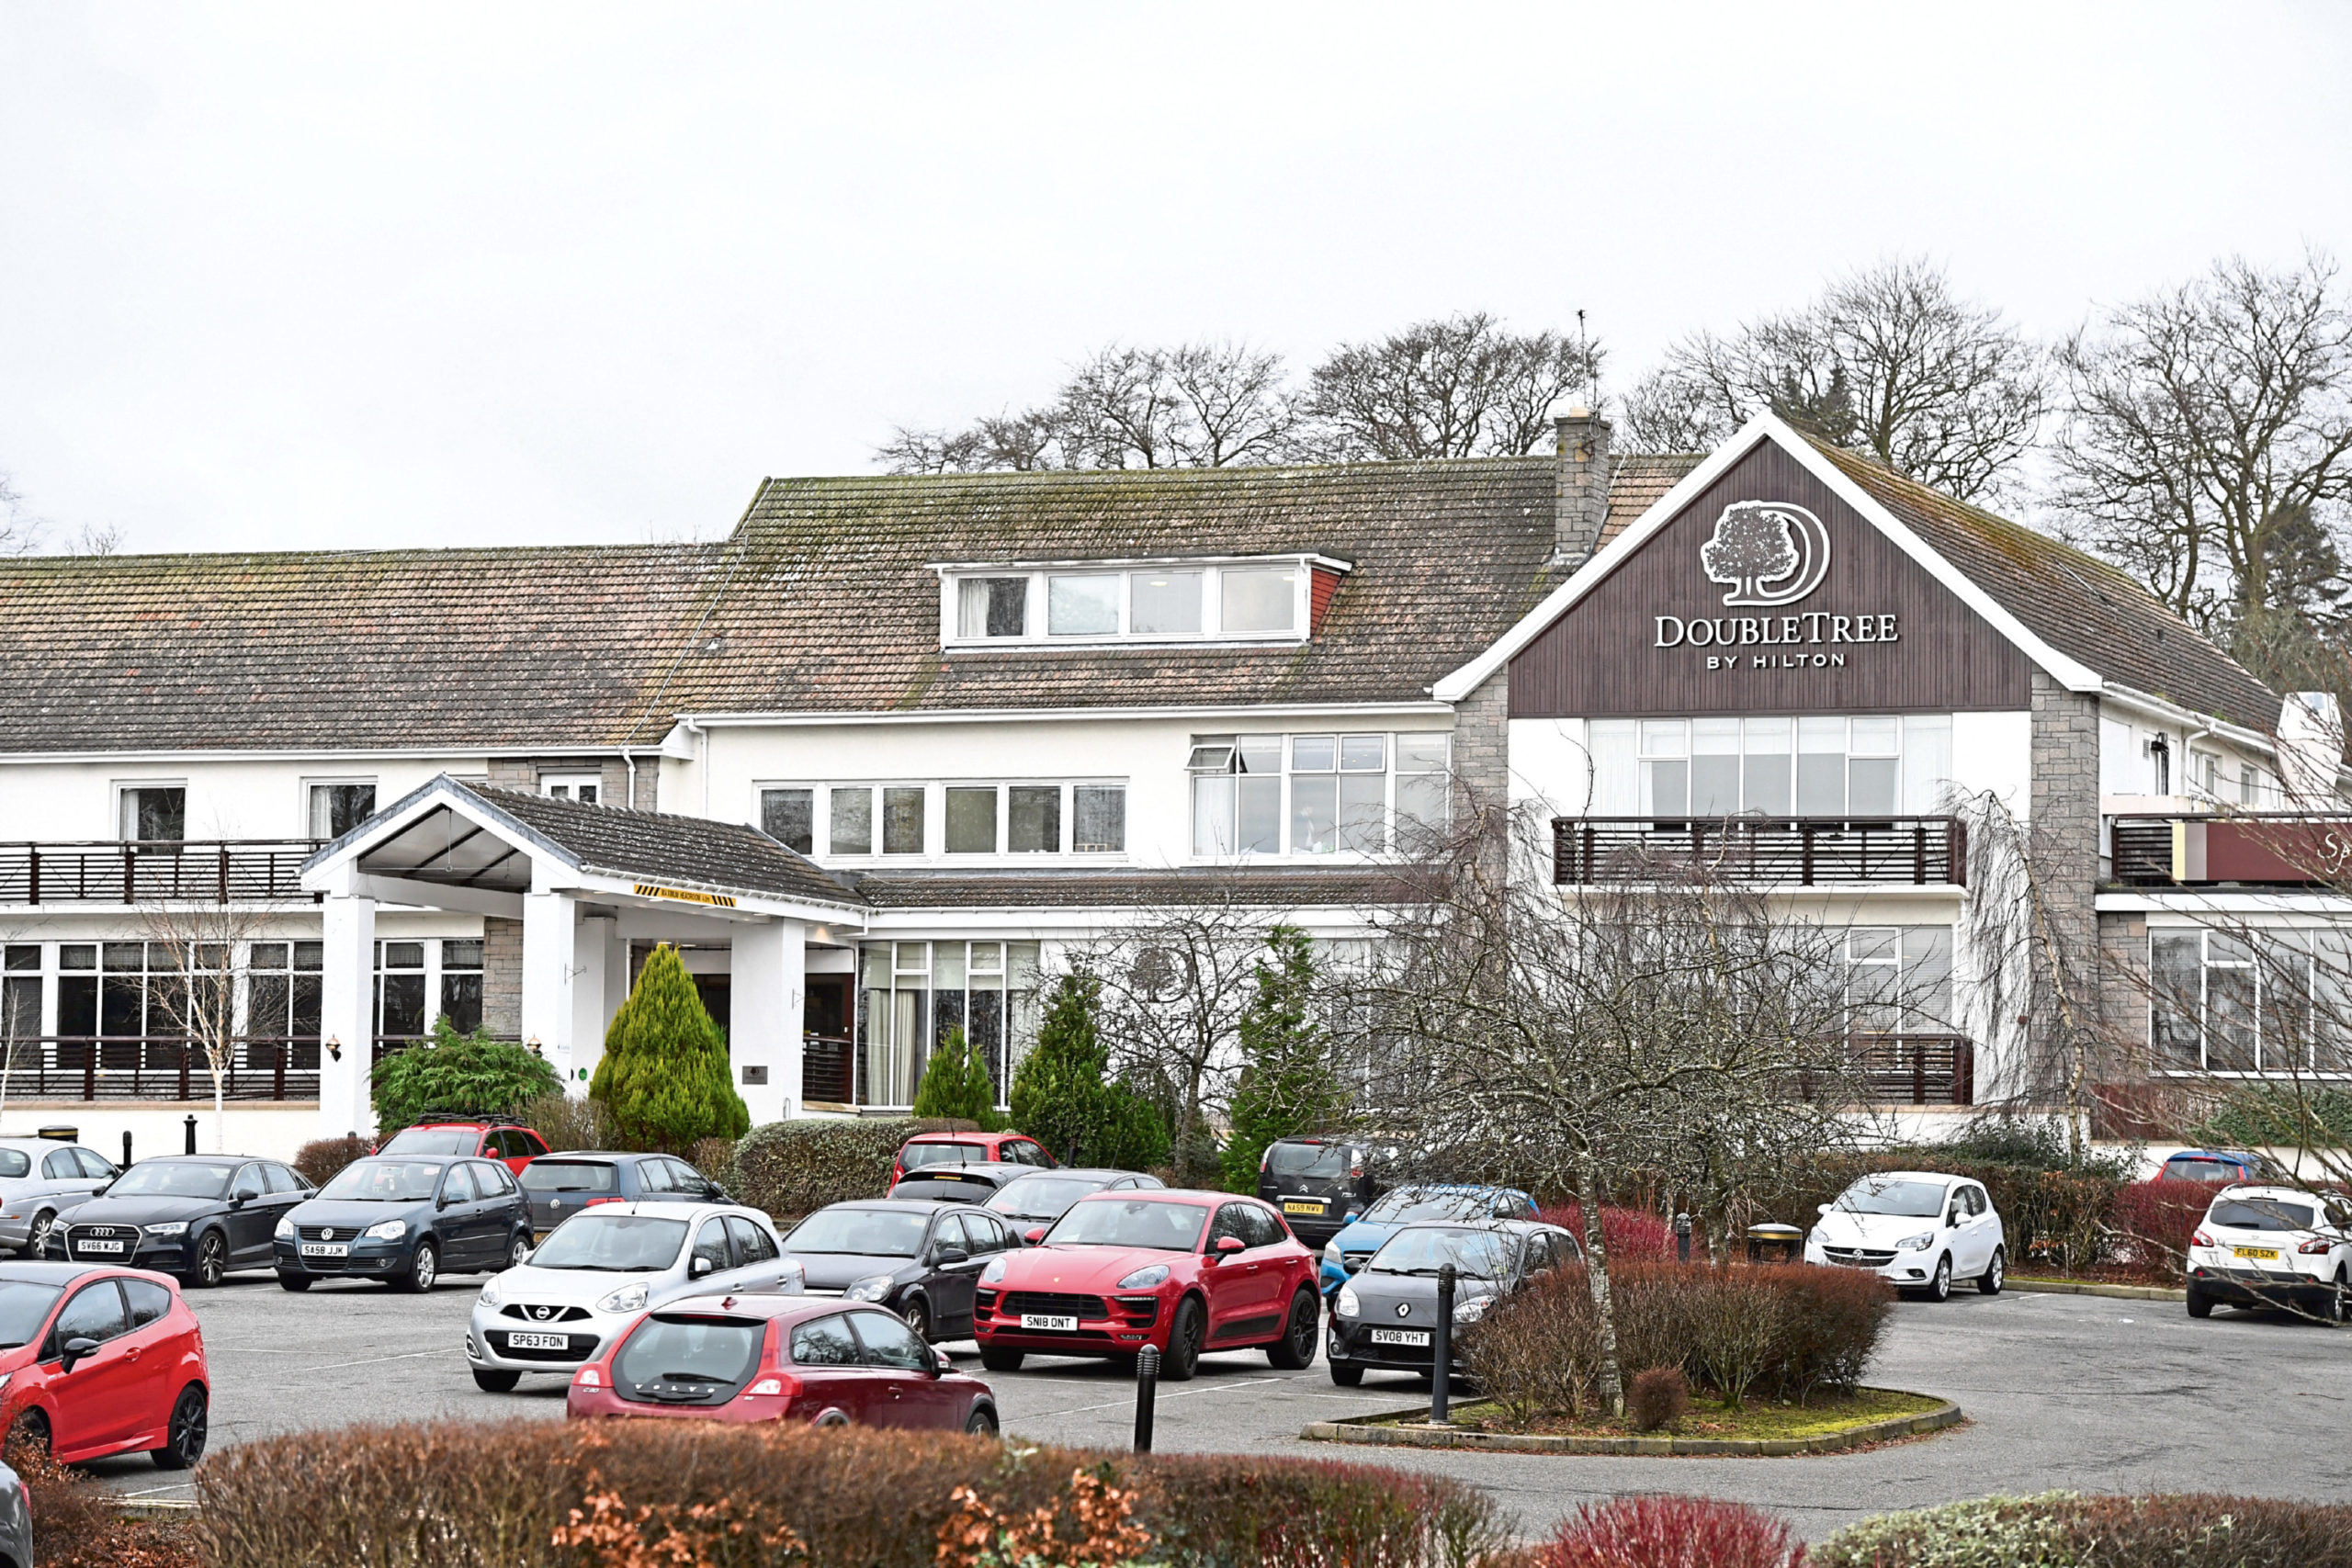 The Treetops hotel in Aberdeen has closed down